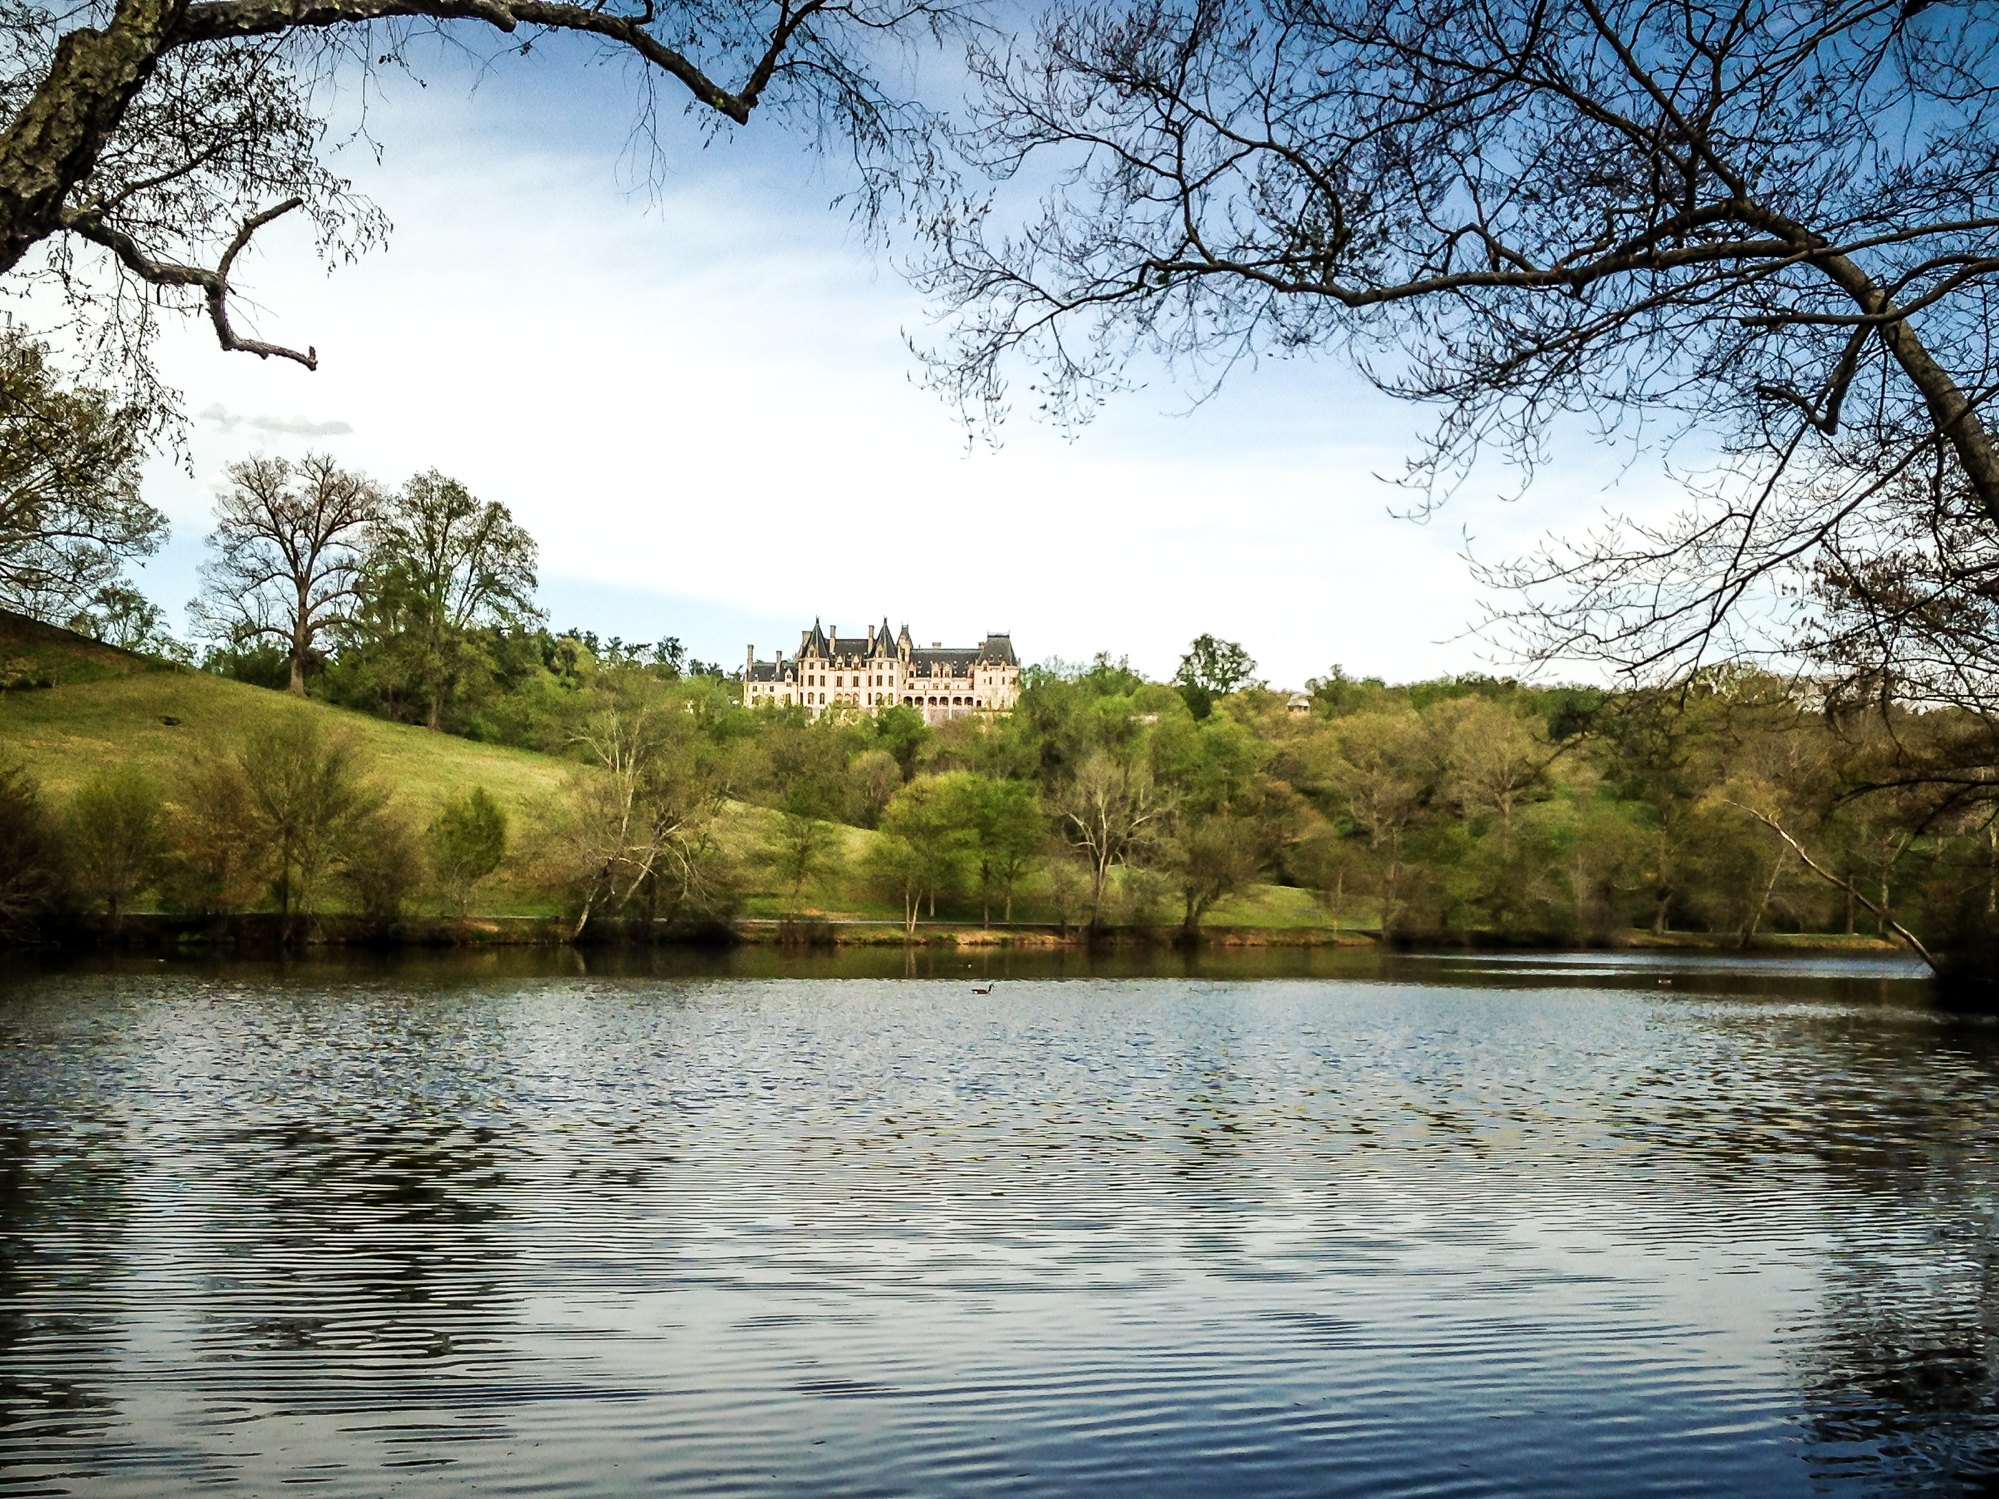 The back of the Biltmore mansion can be viewed from the Lagoon near the house in Asheville, NC NotSoSAHM